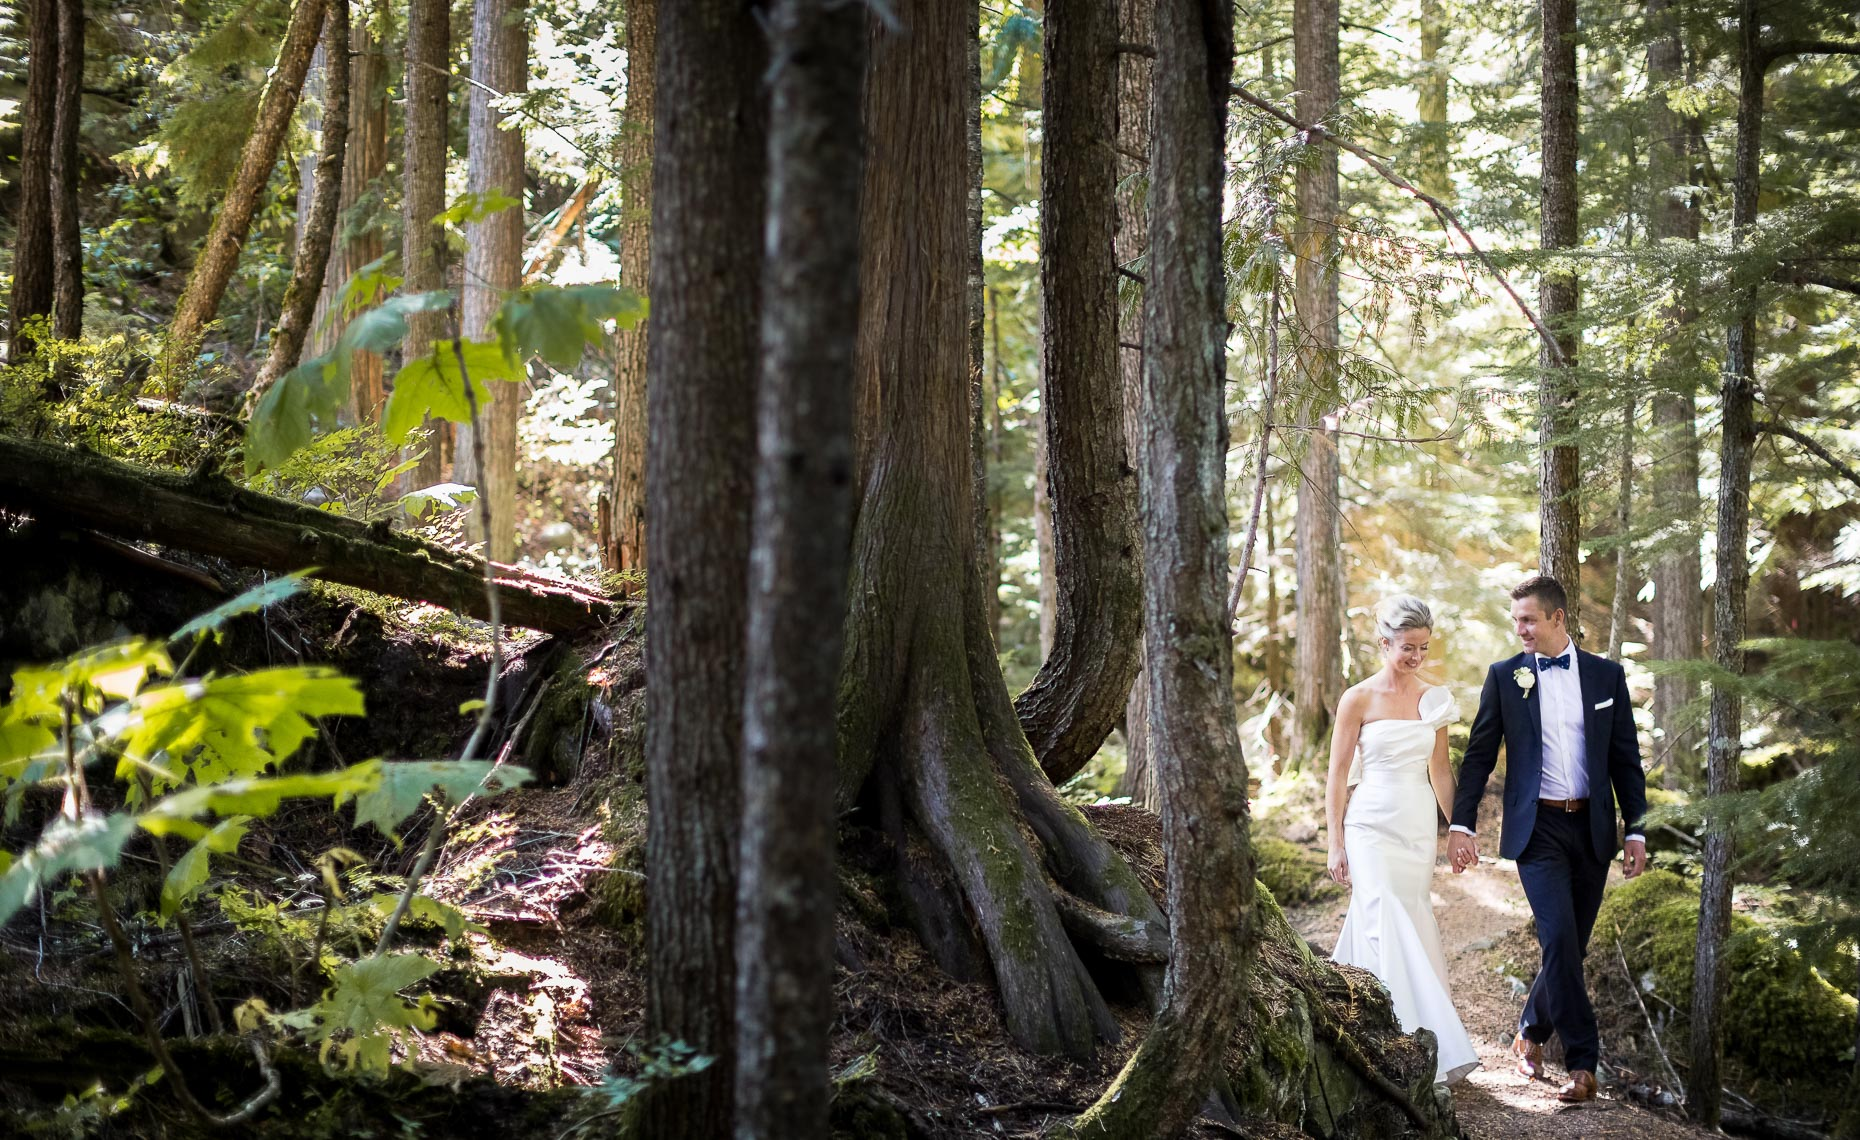 Wedding couple walking in the forest wilderness of Whistler